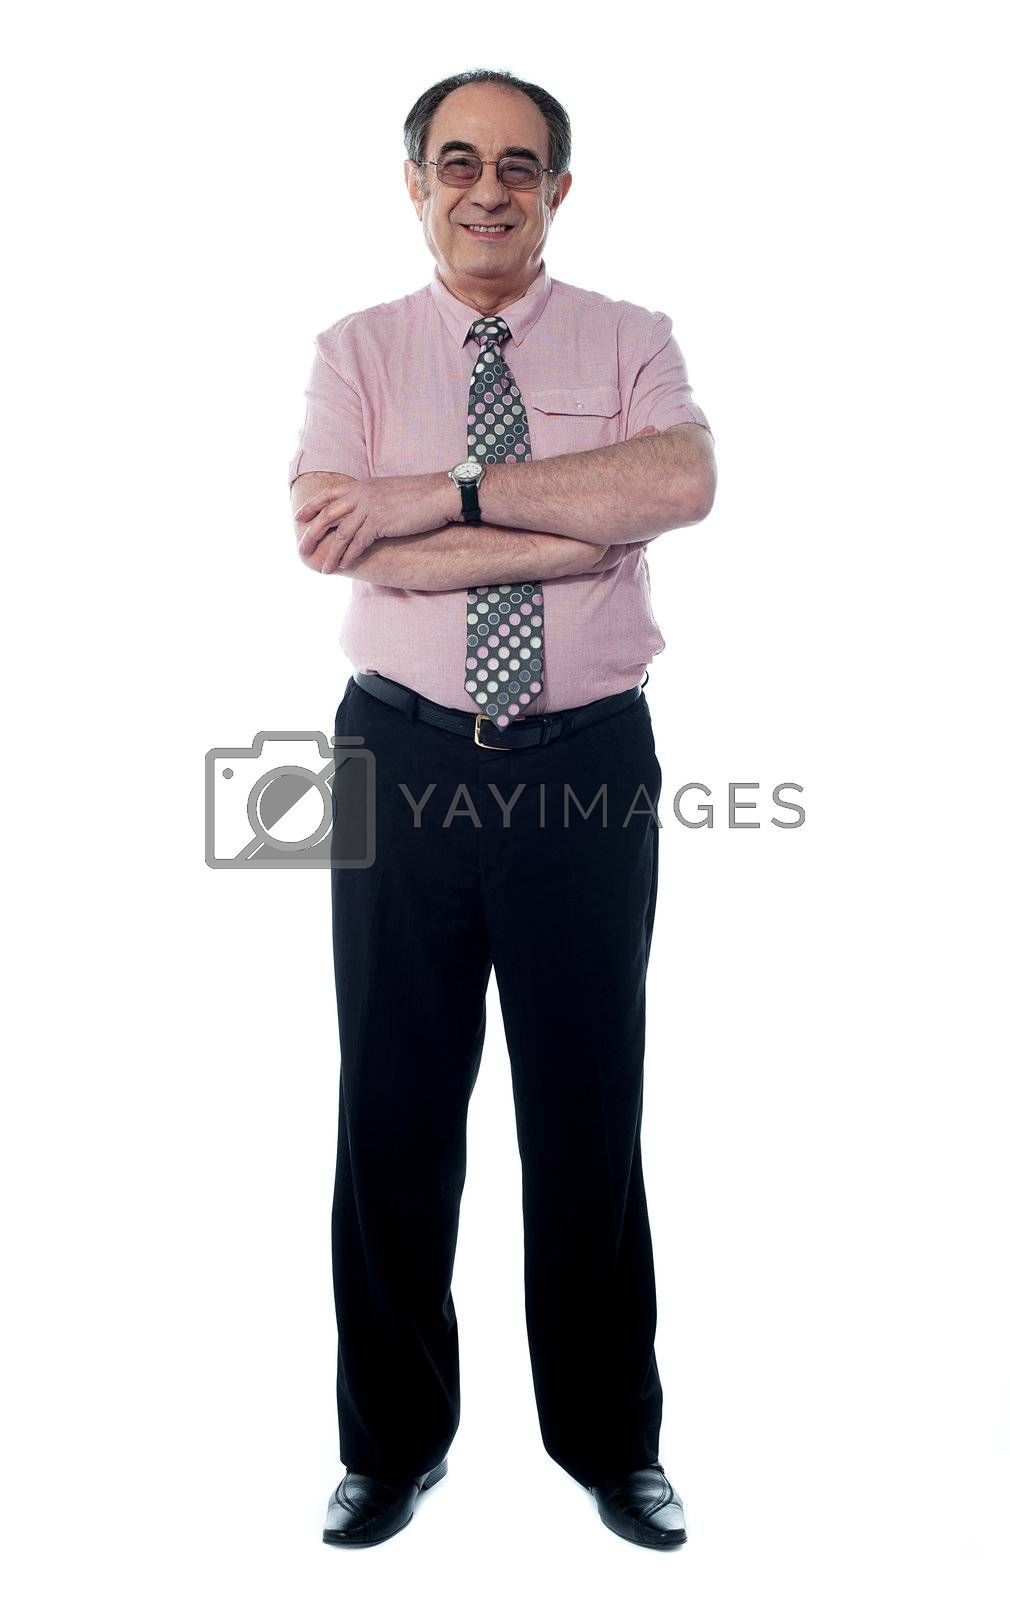 Senior business executive in pink shirt and tie posing with crossed arms isolated on white